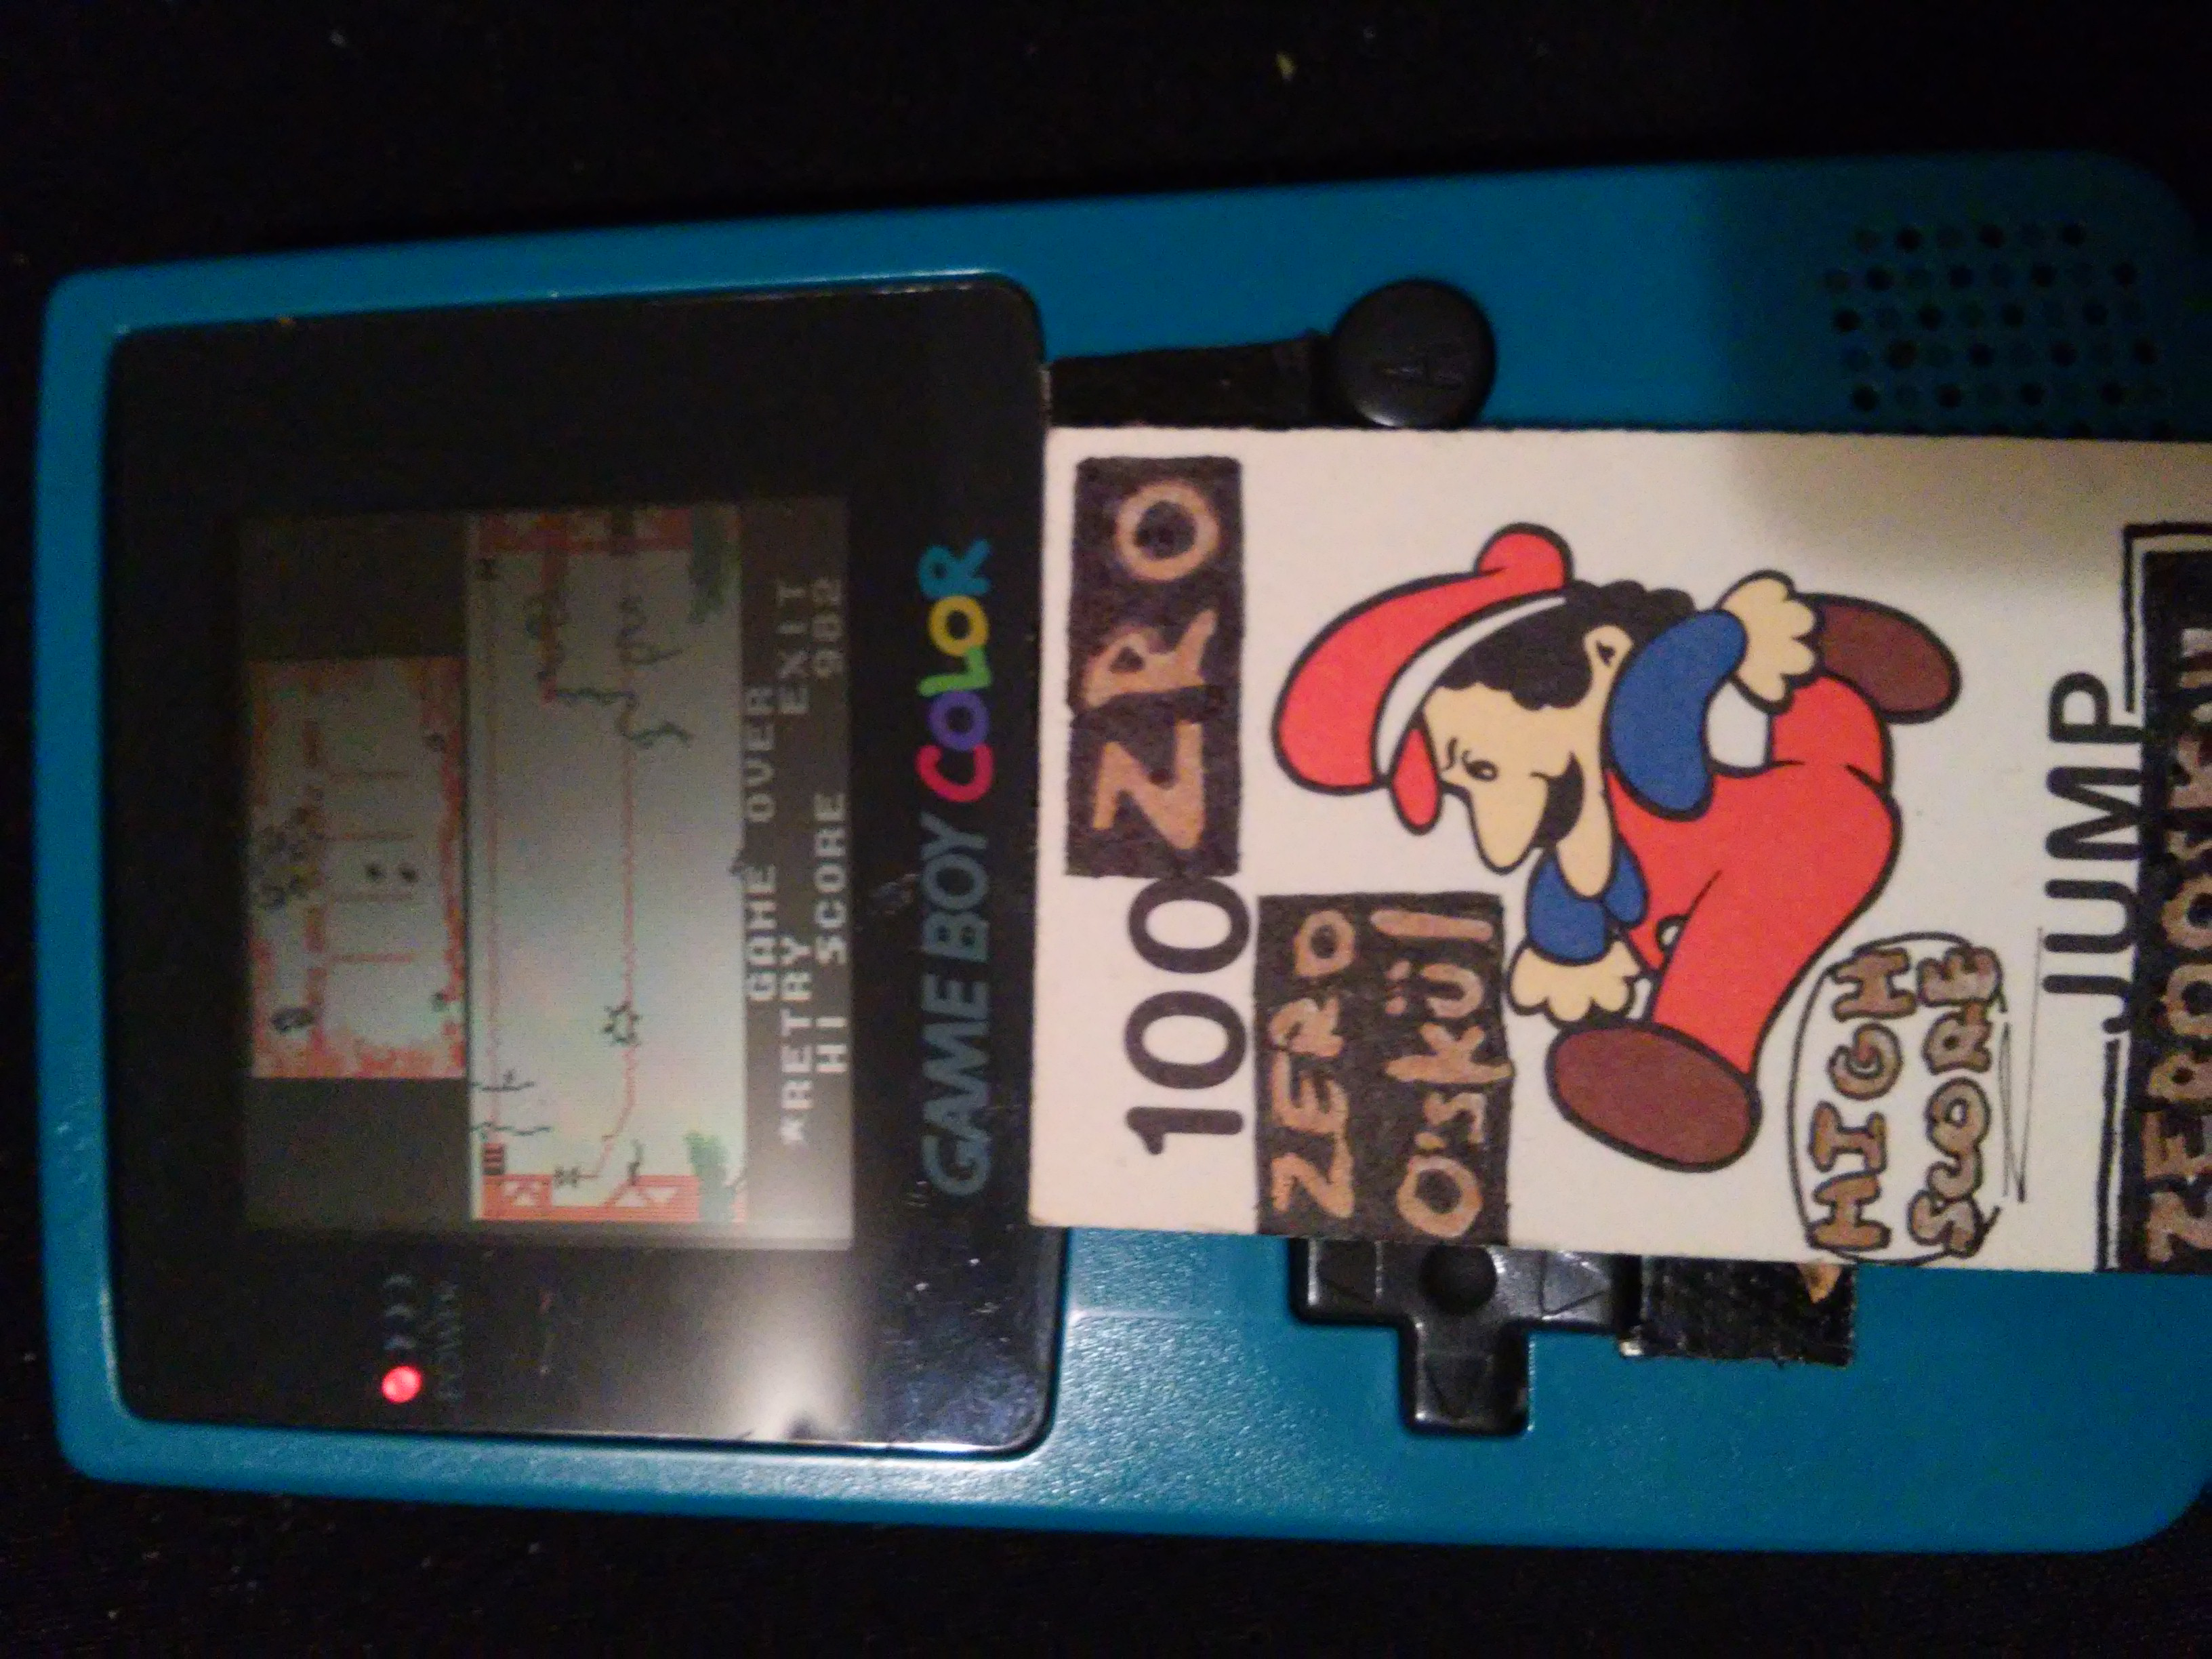 Game & Watch Gallery 2: Donkey Kong II [Classic: Easy] 982 points